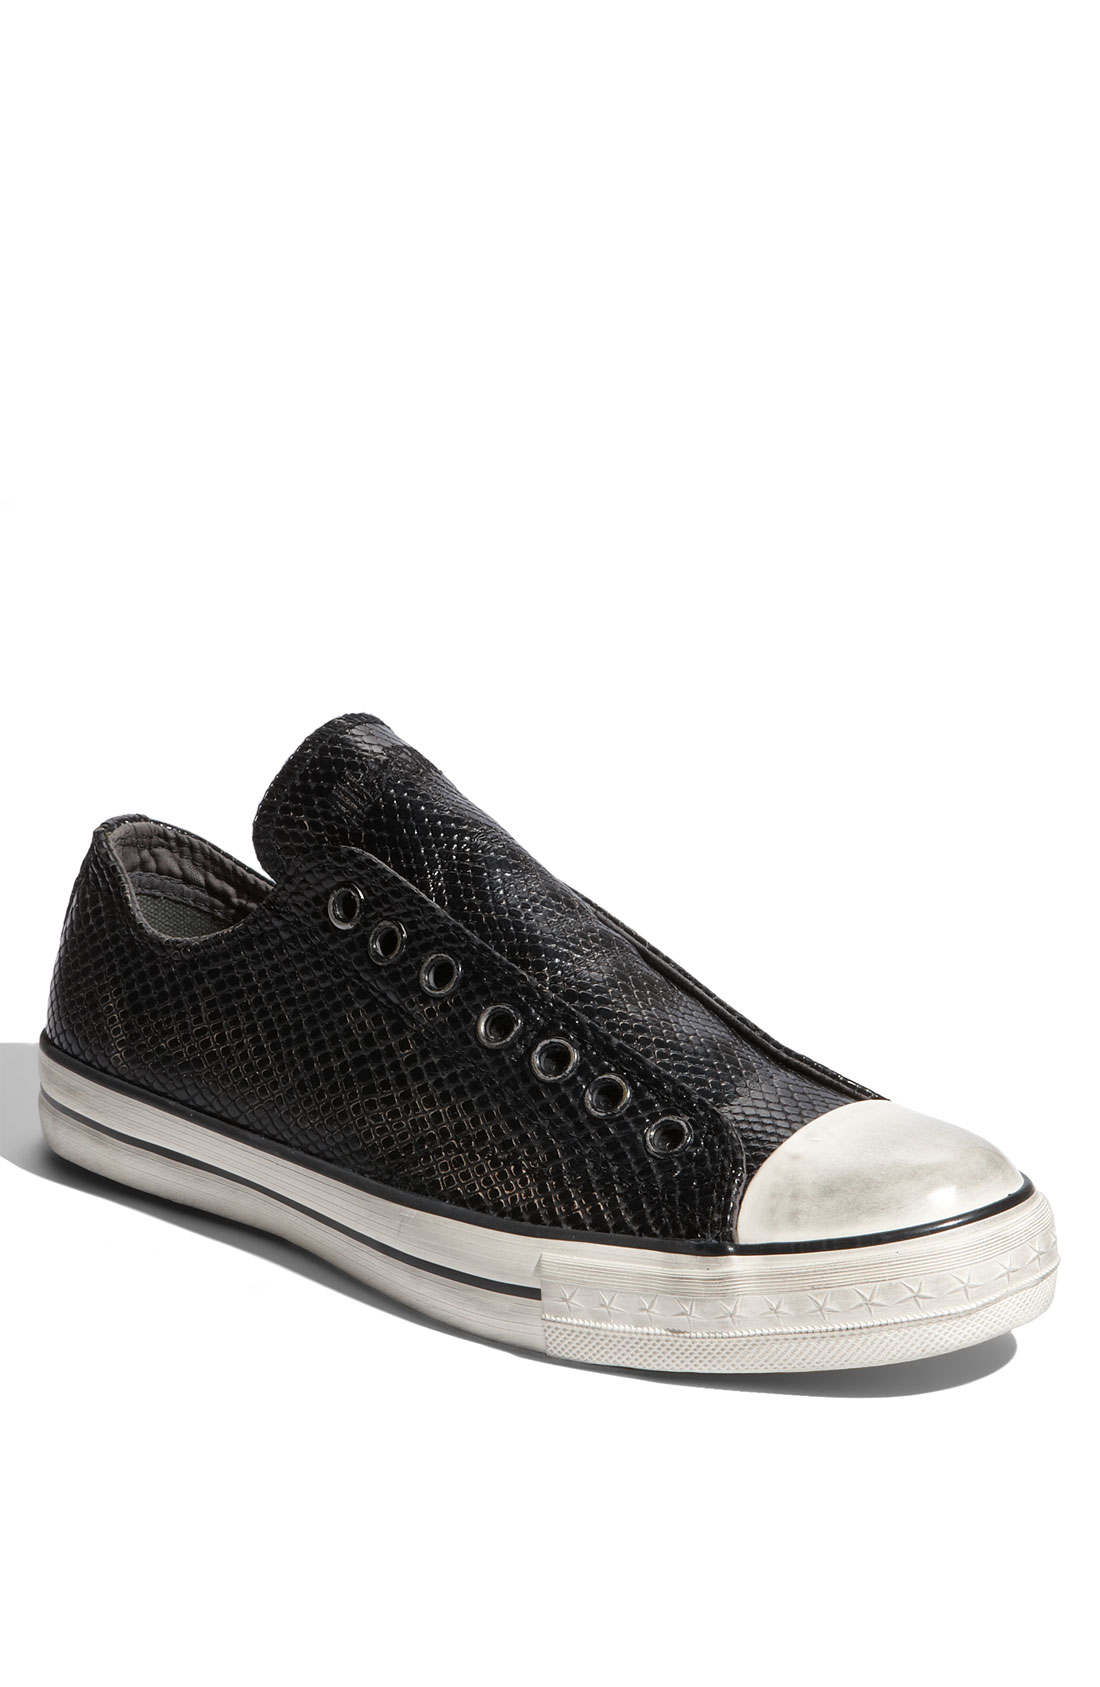 converse chuck taylor textured leather slip on in black for men. Black Bedroom Furniture Sets. Home Design Ideas